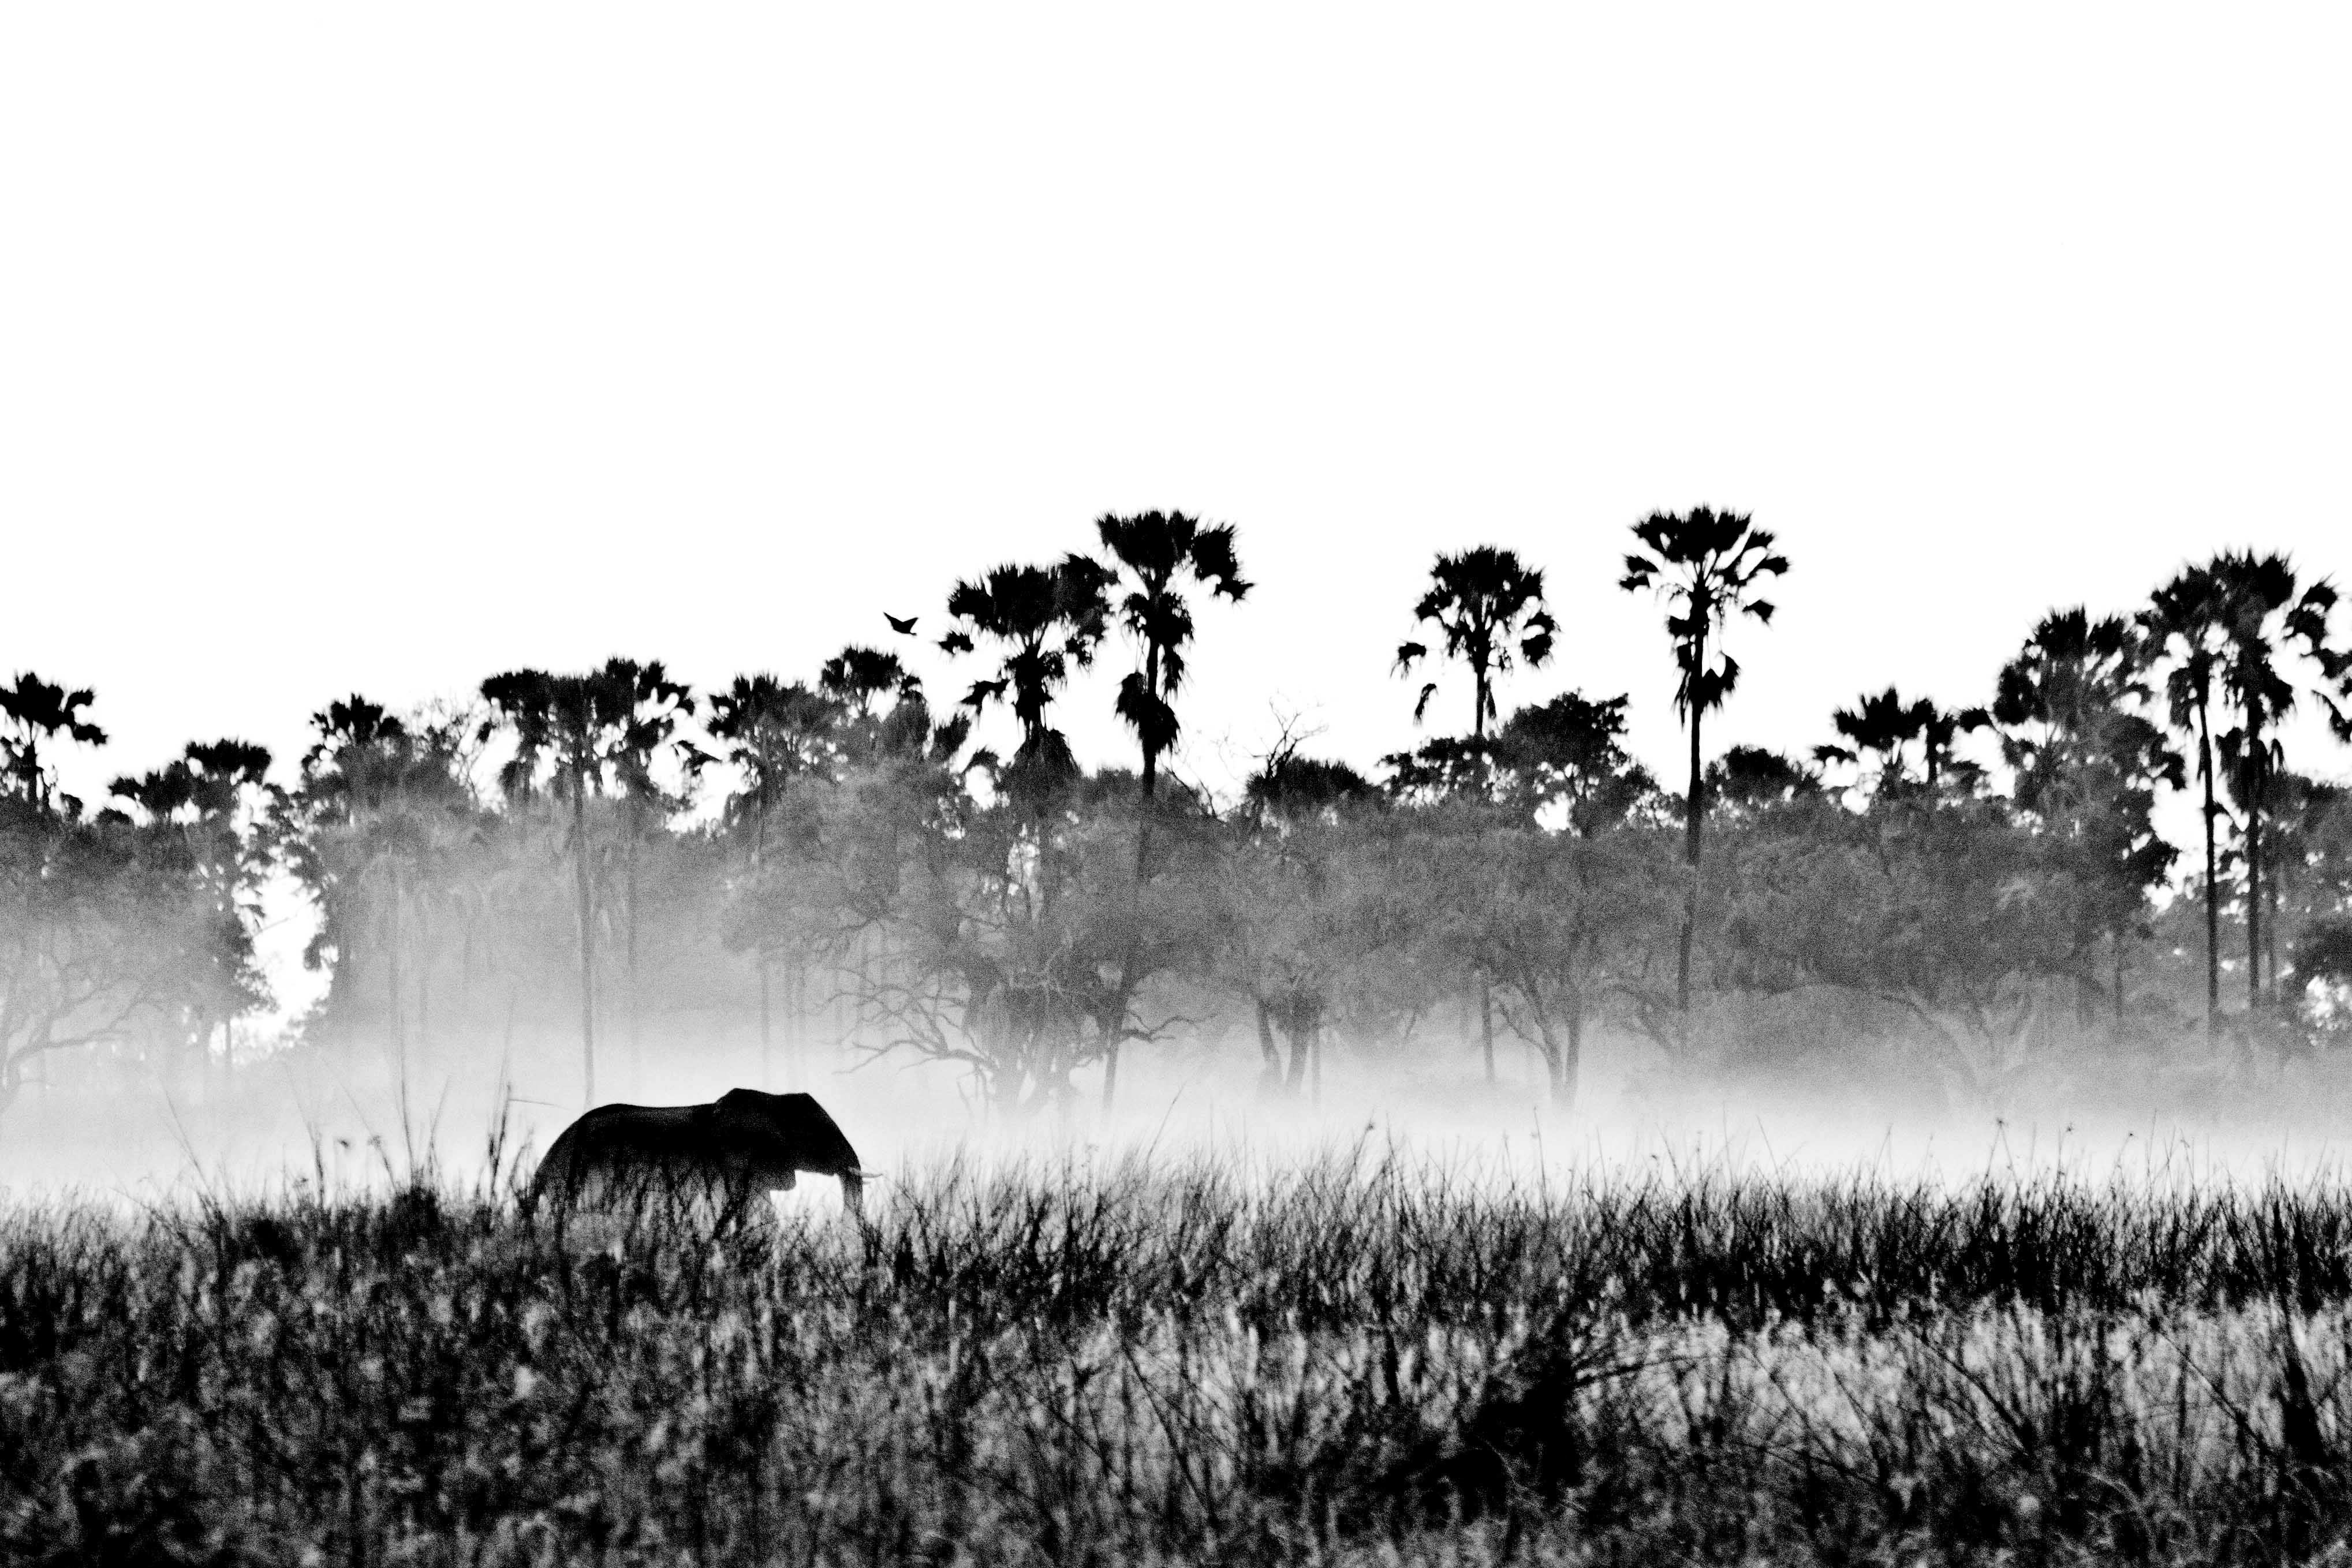 Elephant at Dawn, Moremi NP, Botswana